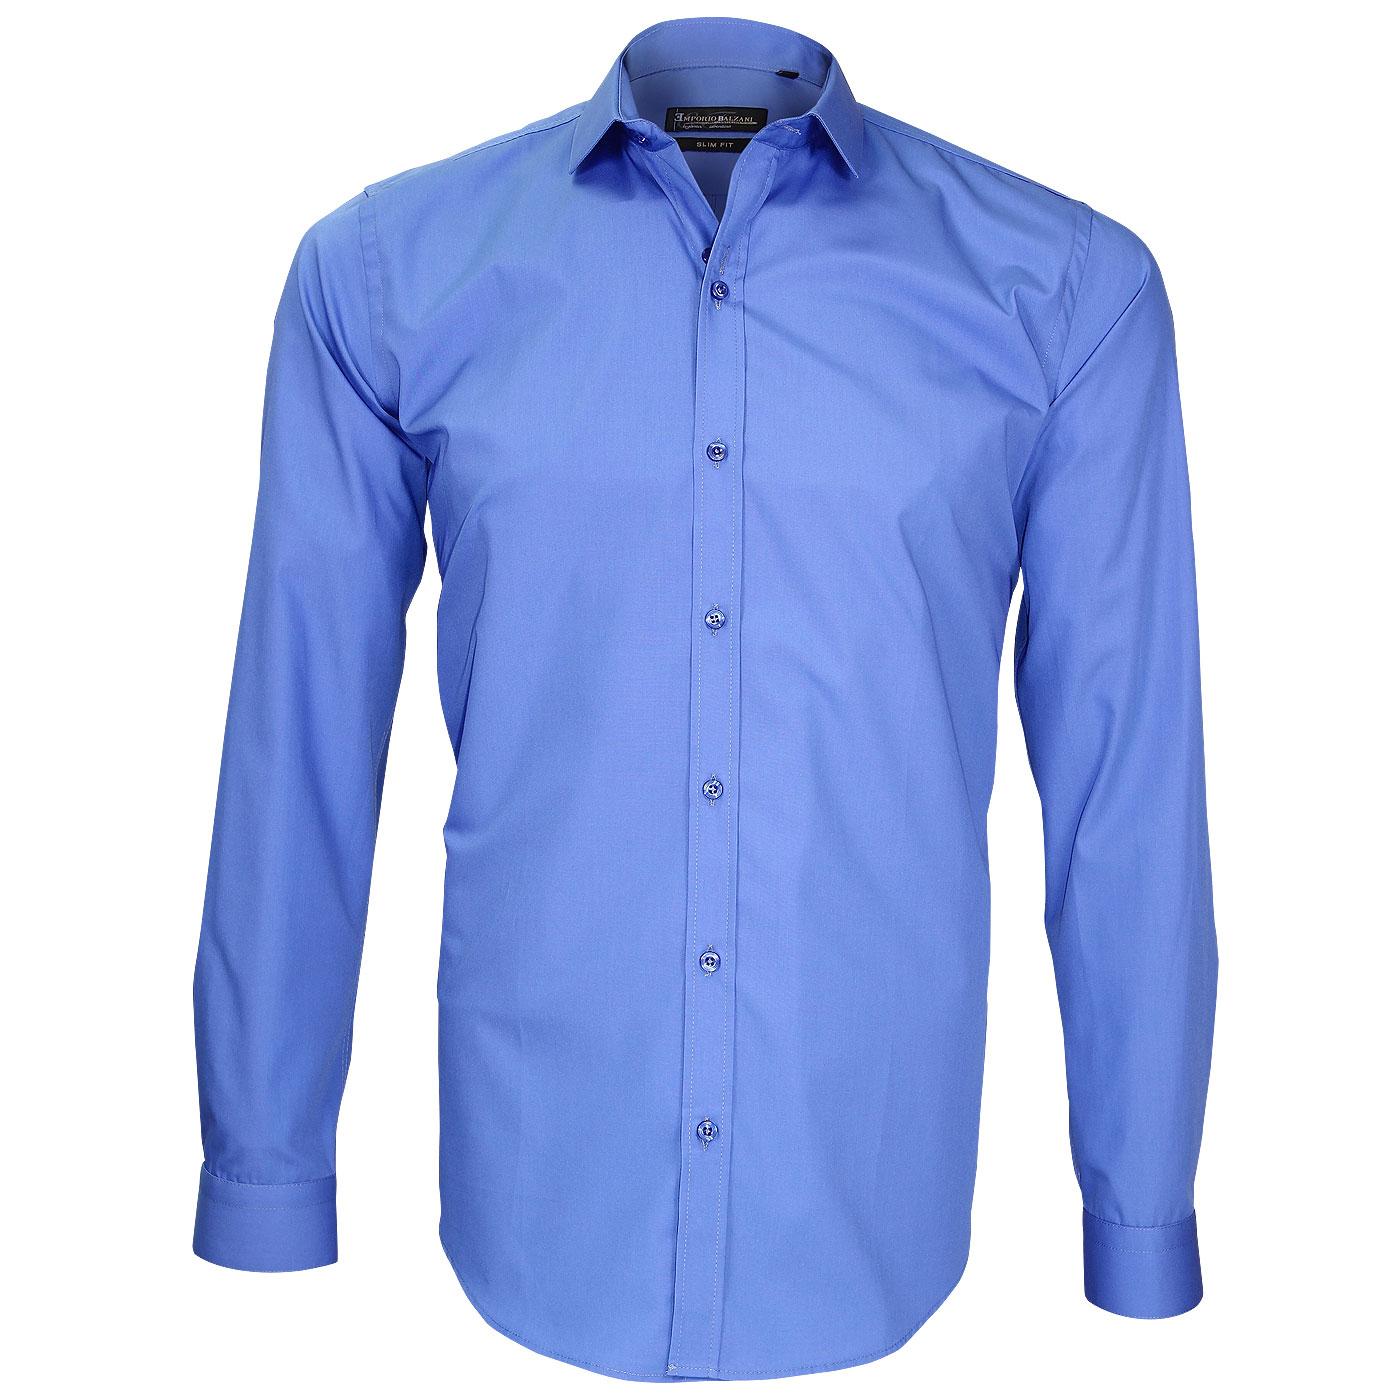 Easy Ironning Shirts: Simplify your life with Webmenshirts.com